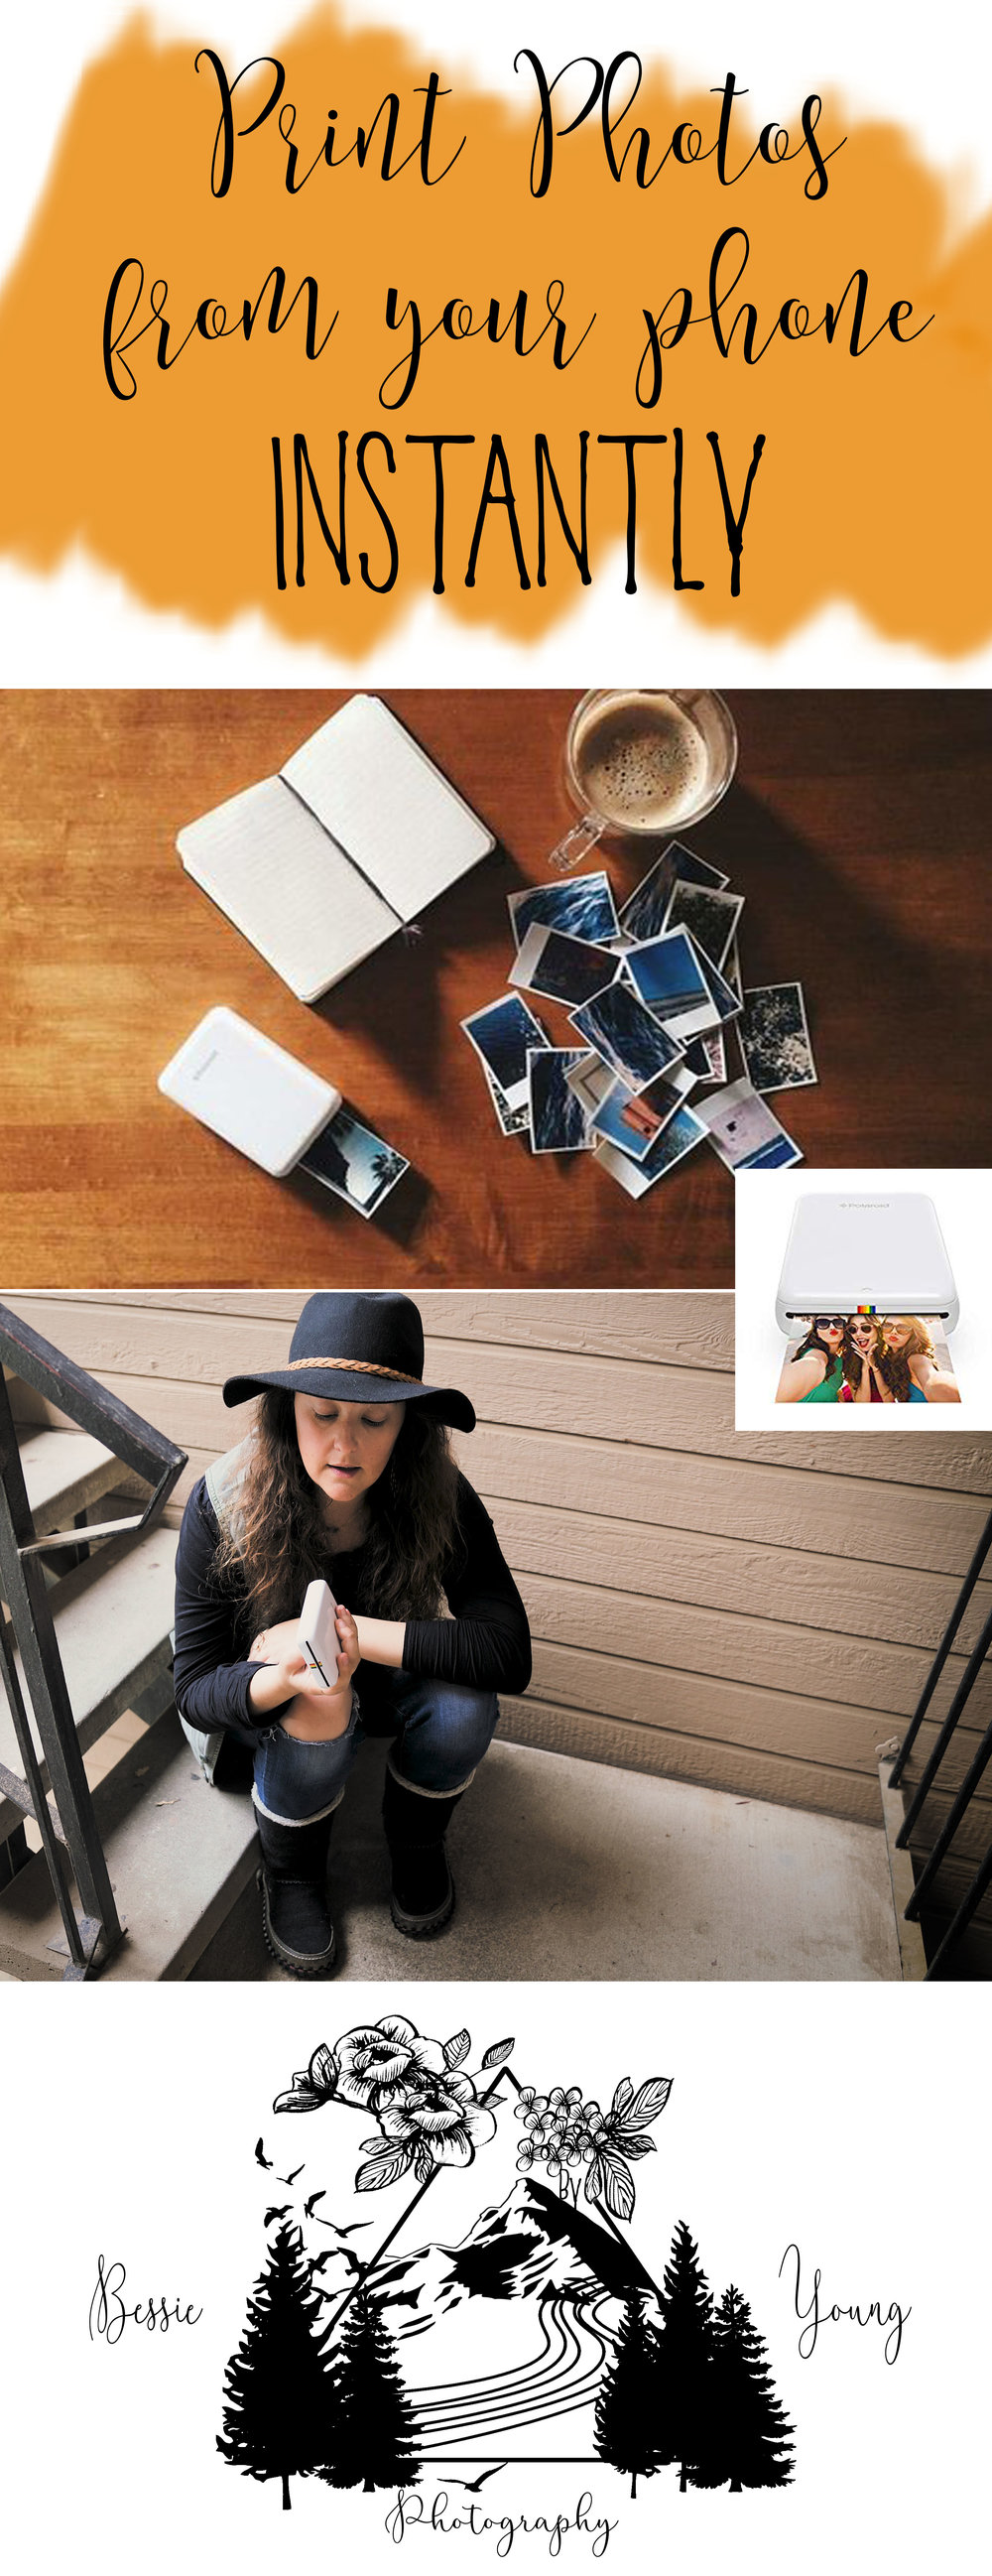 How to print photos from your phone instantly - print on location by Bessie Young Photography.jpg